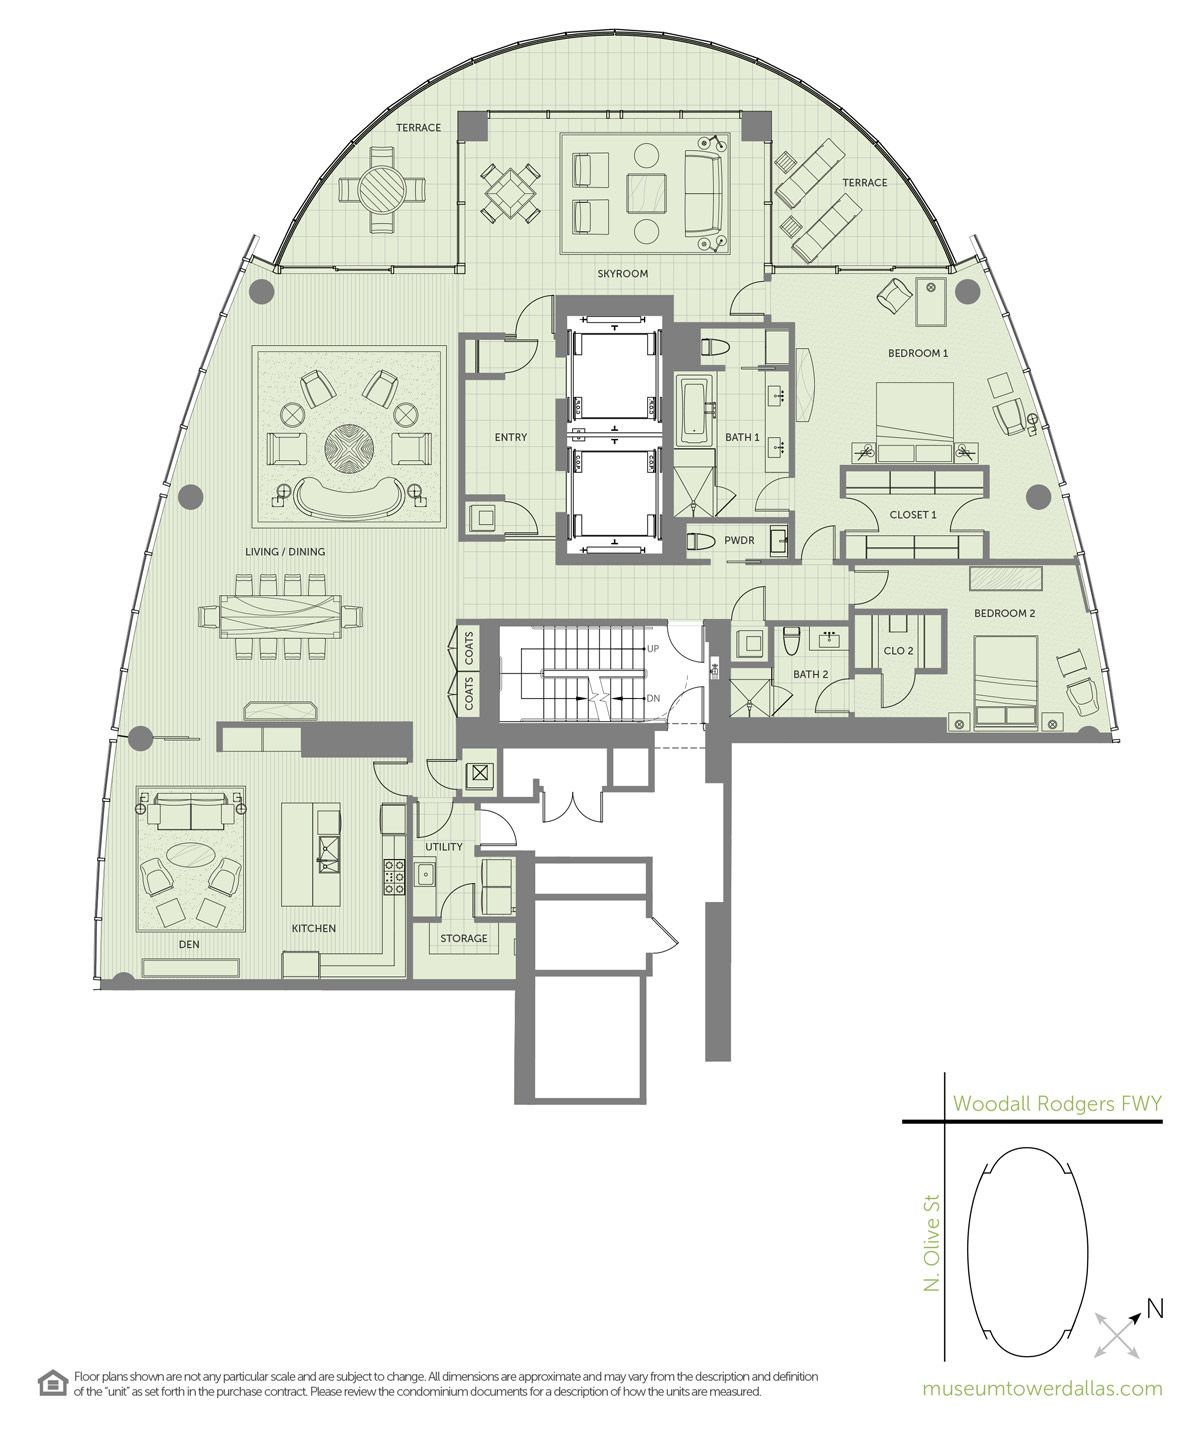 Museum Tower Offers A Variety Of Unique Downtown Dallas Condominium Floorplans Ranging From 1 800 Sq Ft Floor Plans Condo Floor Plans Condominium Floor Plan